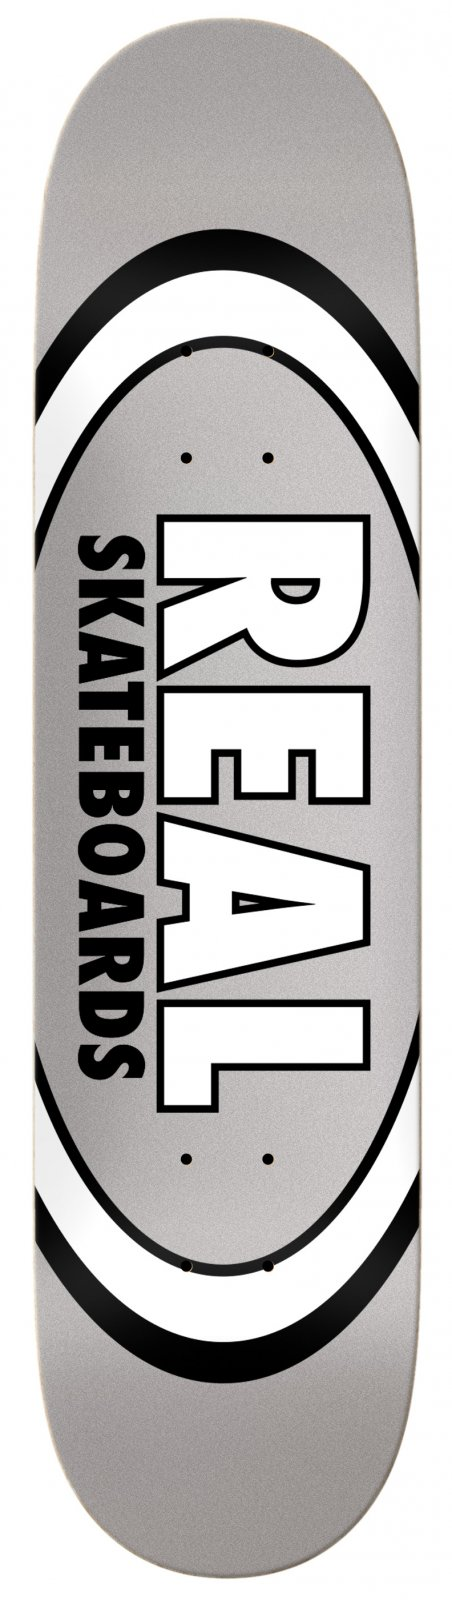 Real Classic Oval 7.75 x 29.5 Skateboard Deck